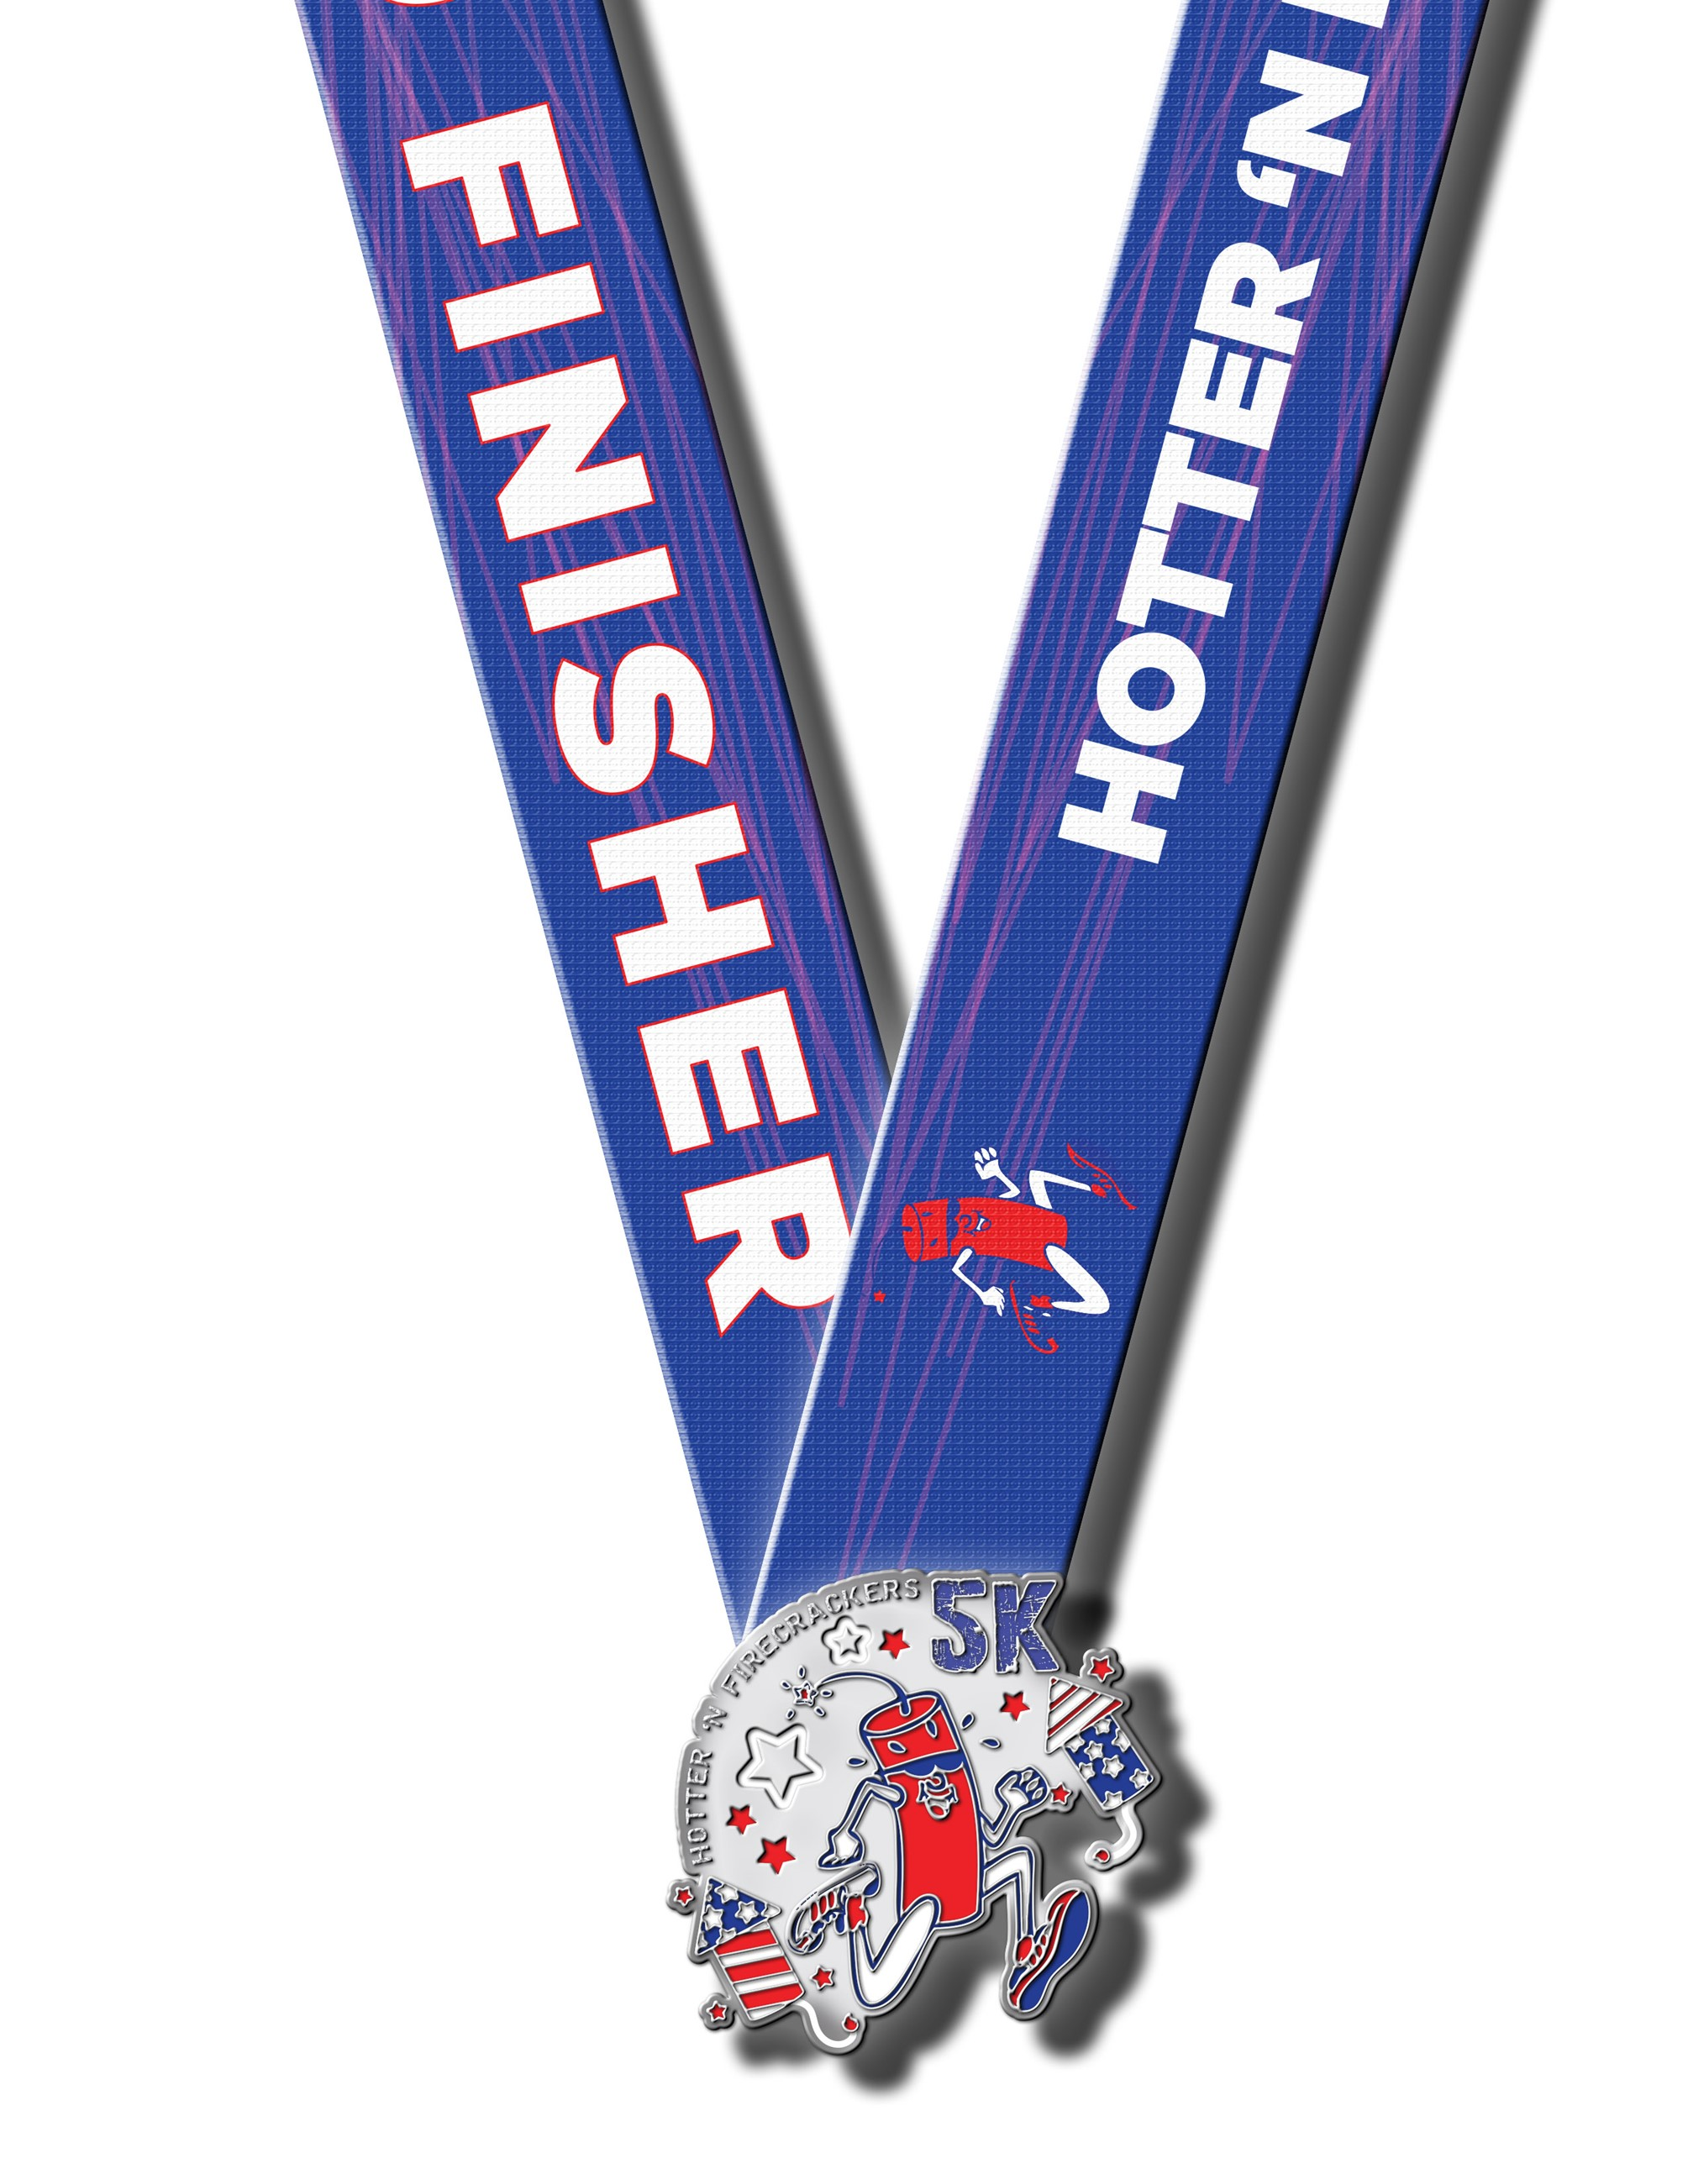 Hotter 'n Firecrackers Finisher Medal